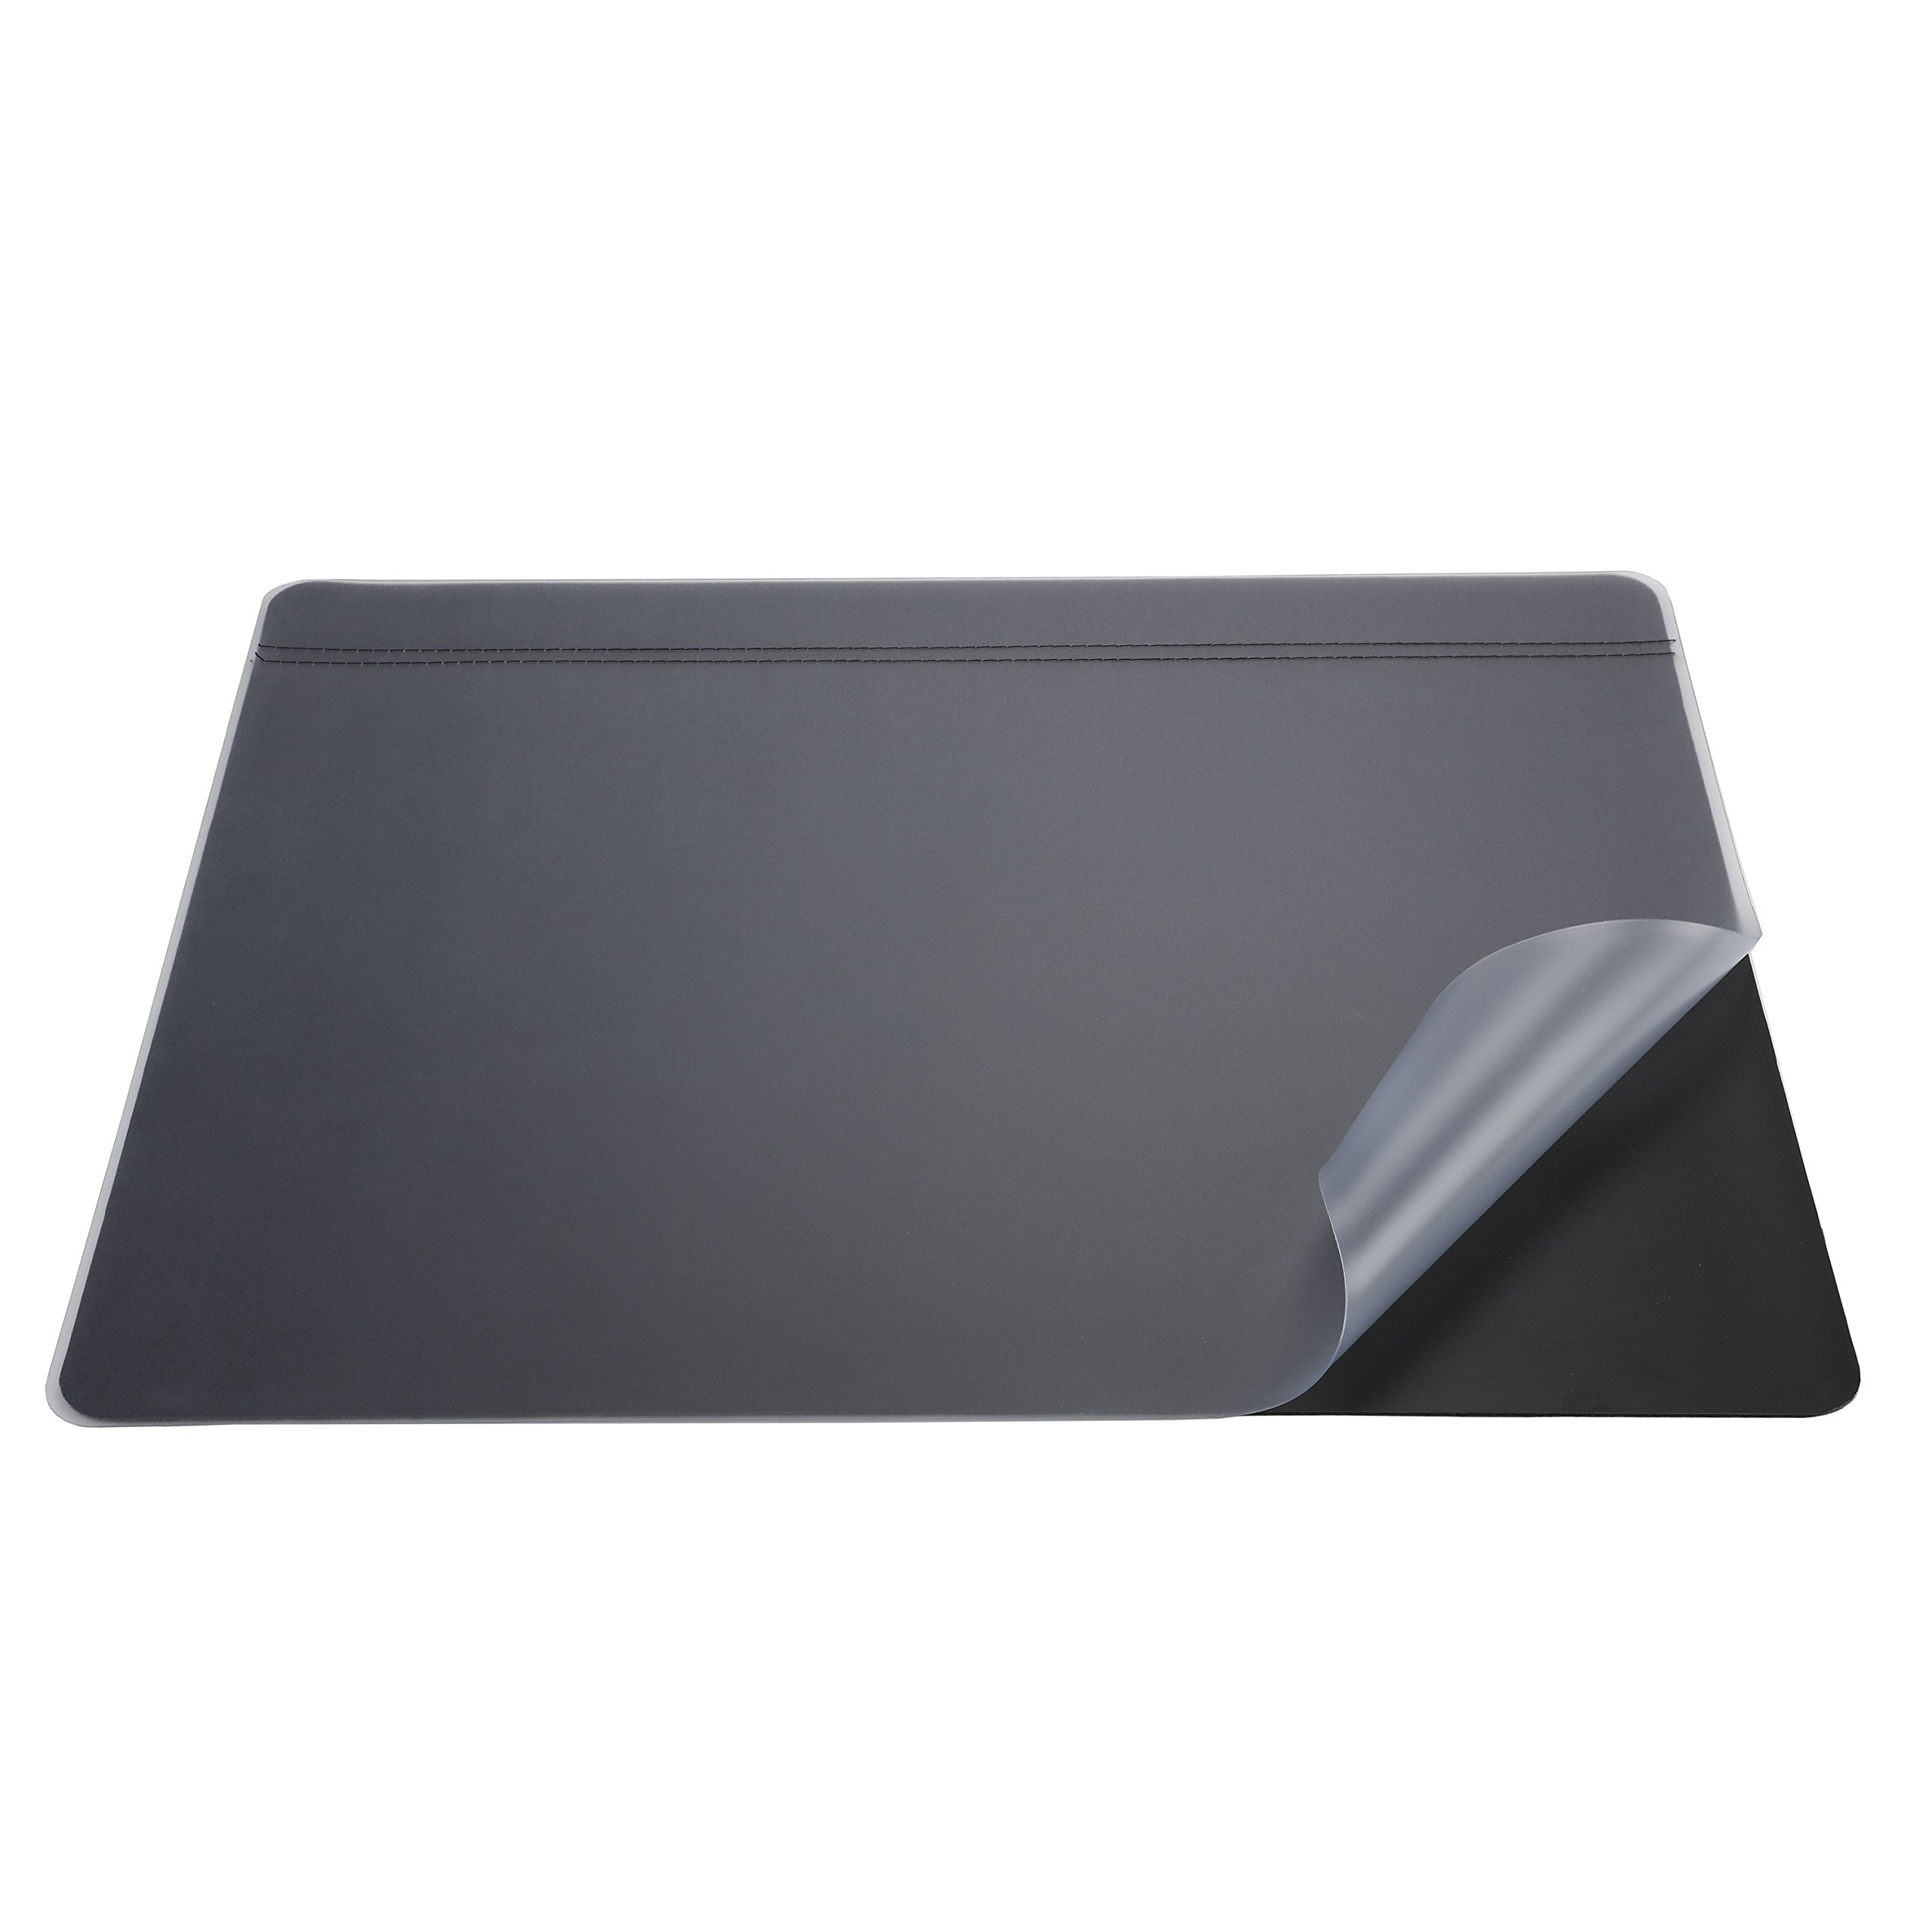 Artistic 48172 19'' x 24'' Krystal-Lift Non-Glare Desk Pad Organizer, Black/Frosted Lift Top